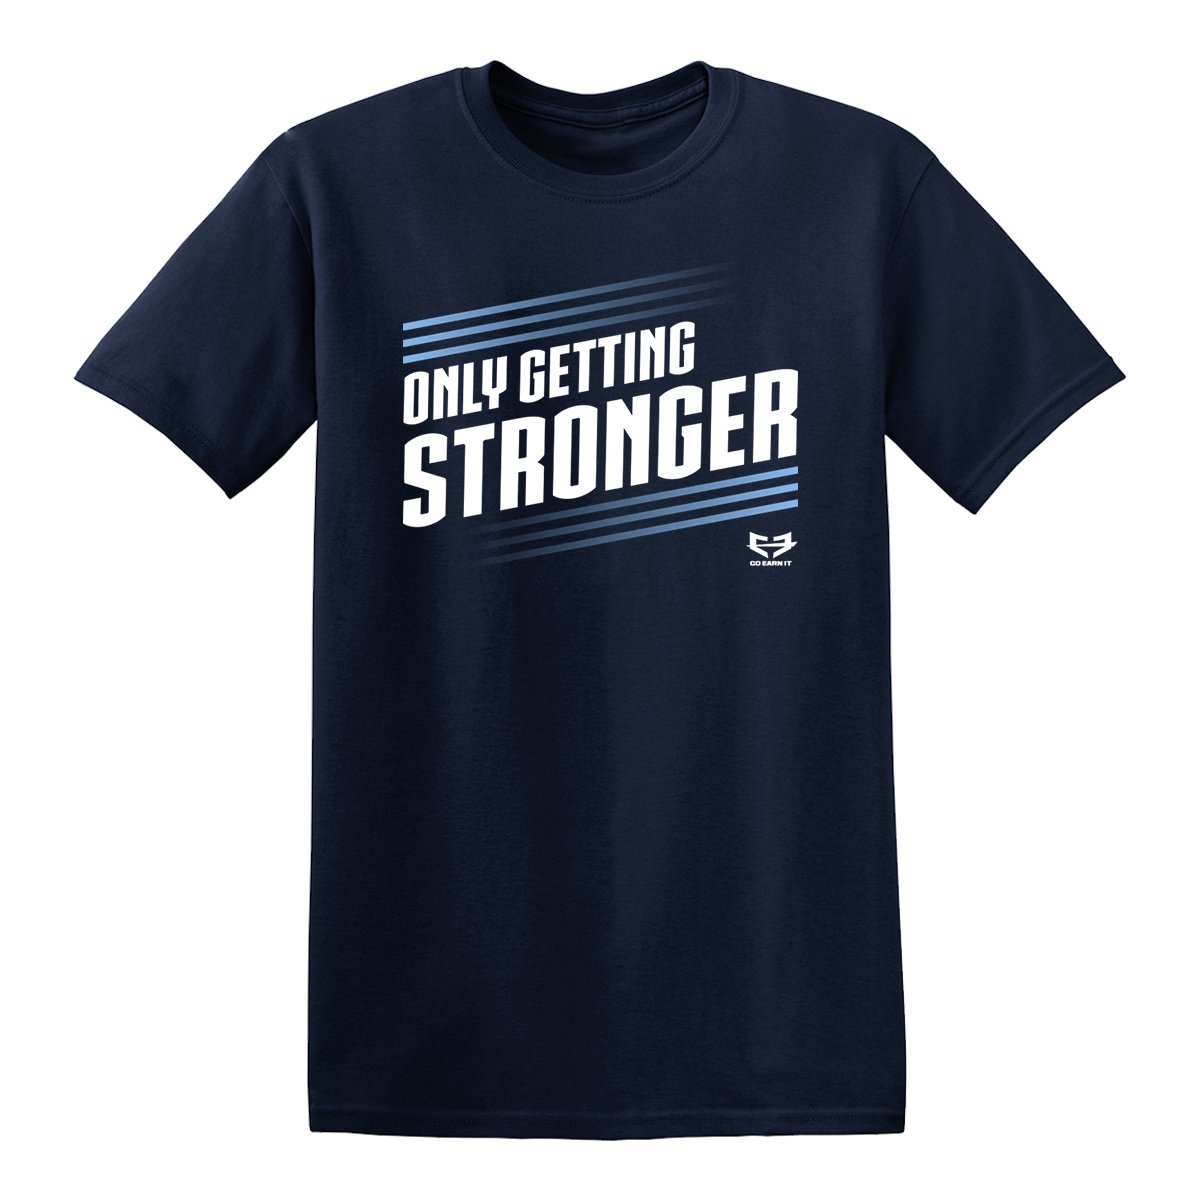 ONLY GETTING STRONGER GRAPHIC TEE - Navy